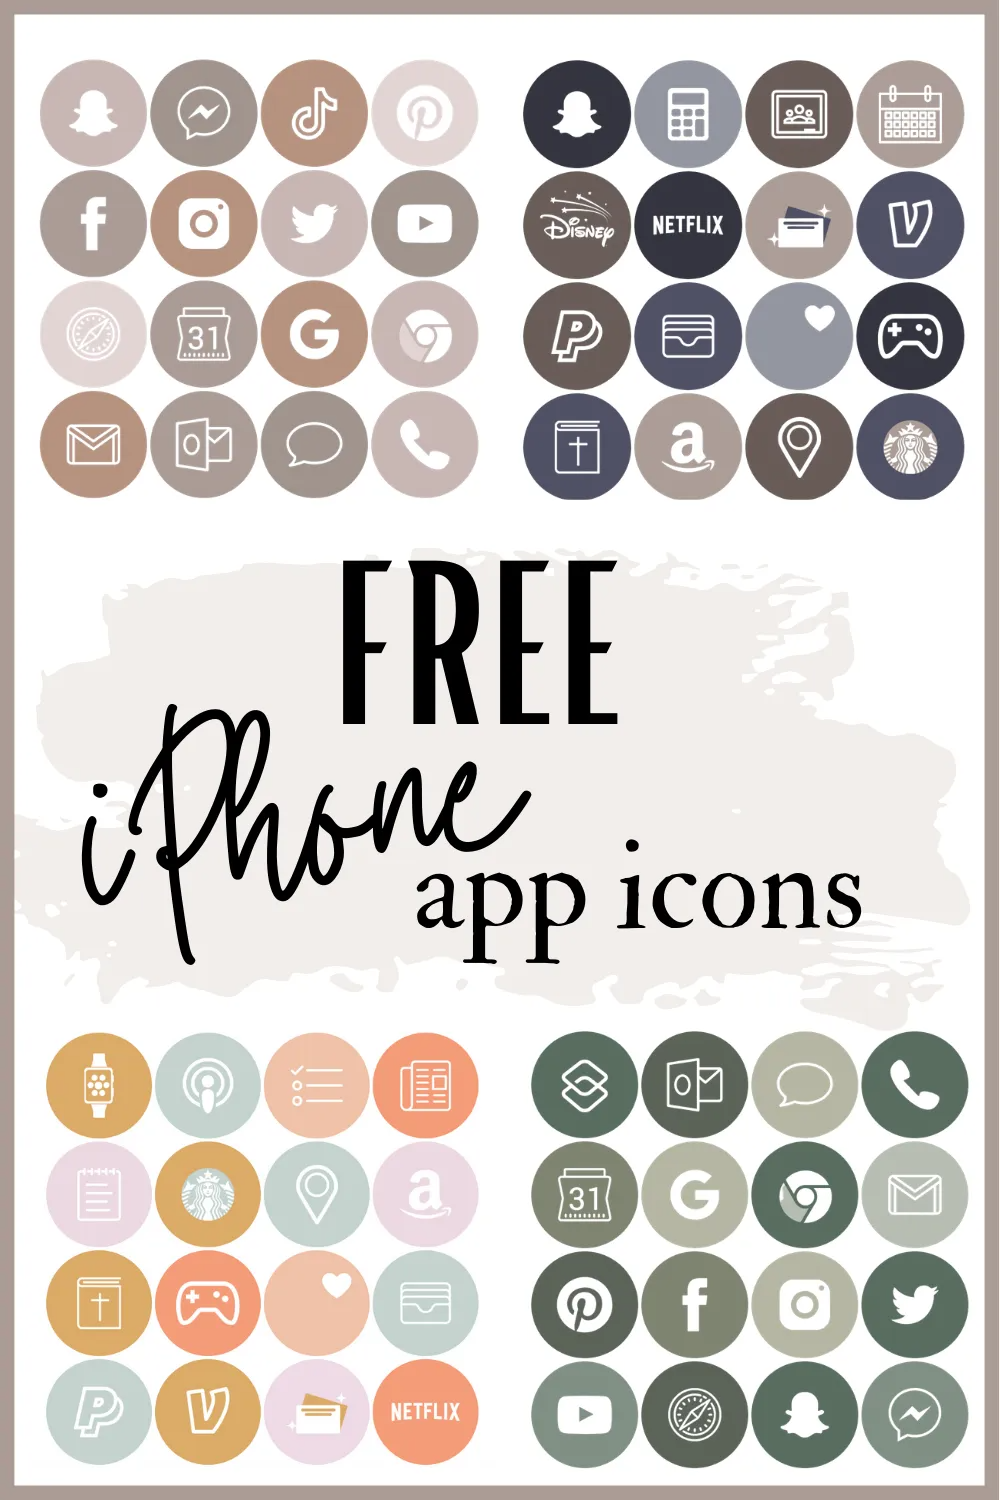 Free iPhone App Icons | Guitar & Lace